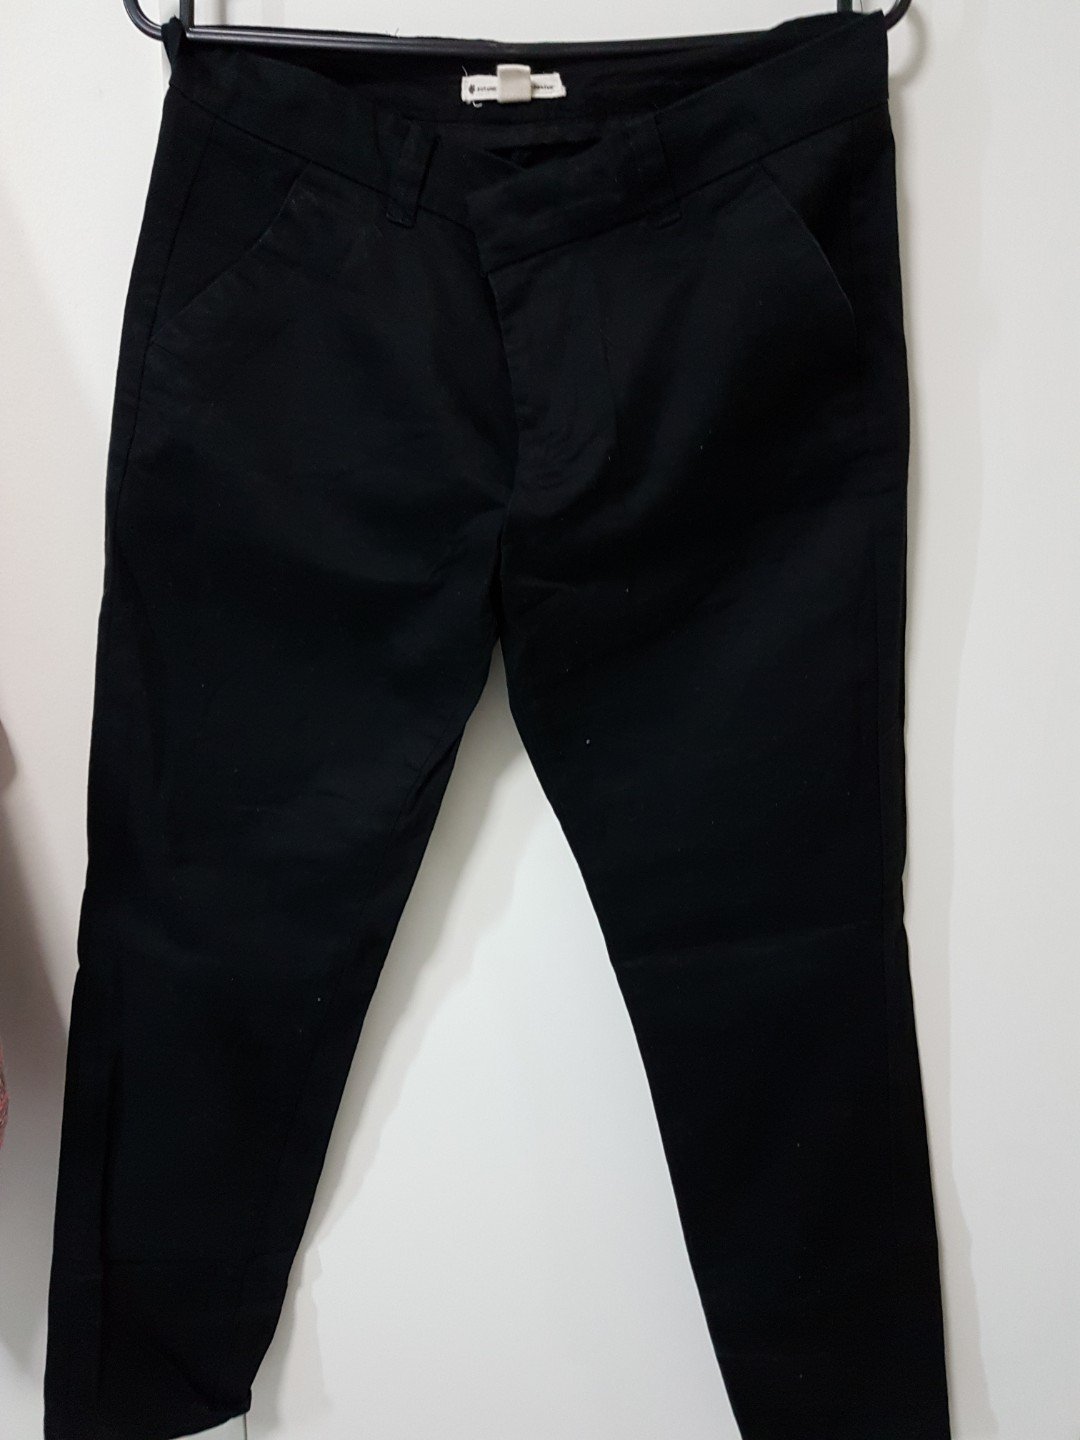 939e0f76c Mango black slacks, Women's Fashion, Clothes, Pants, Jeans & Shorts ...